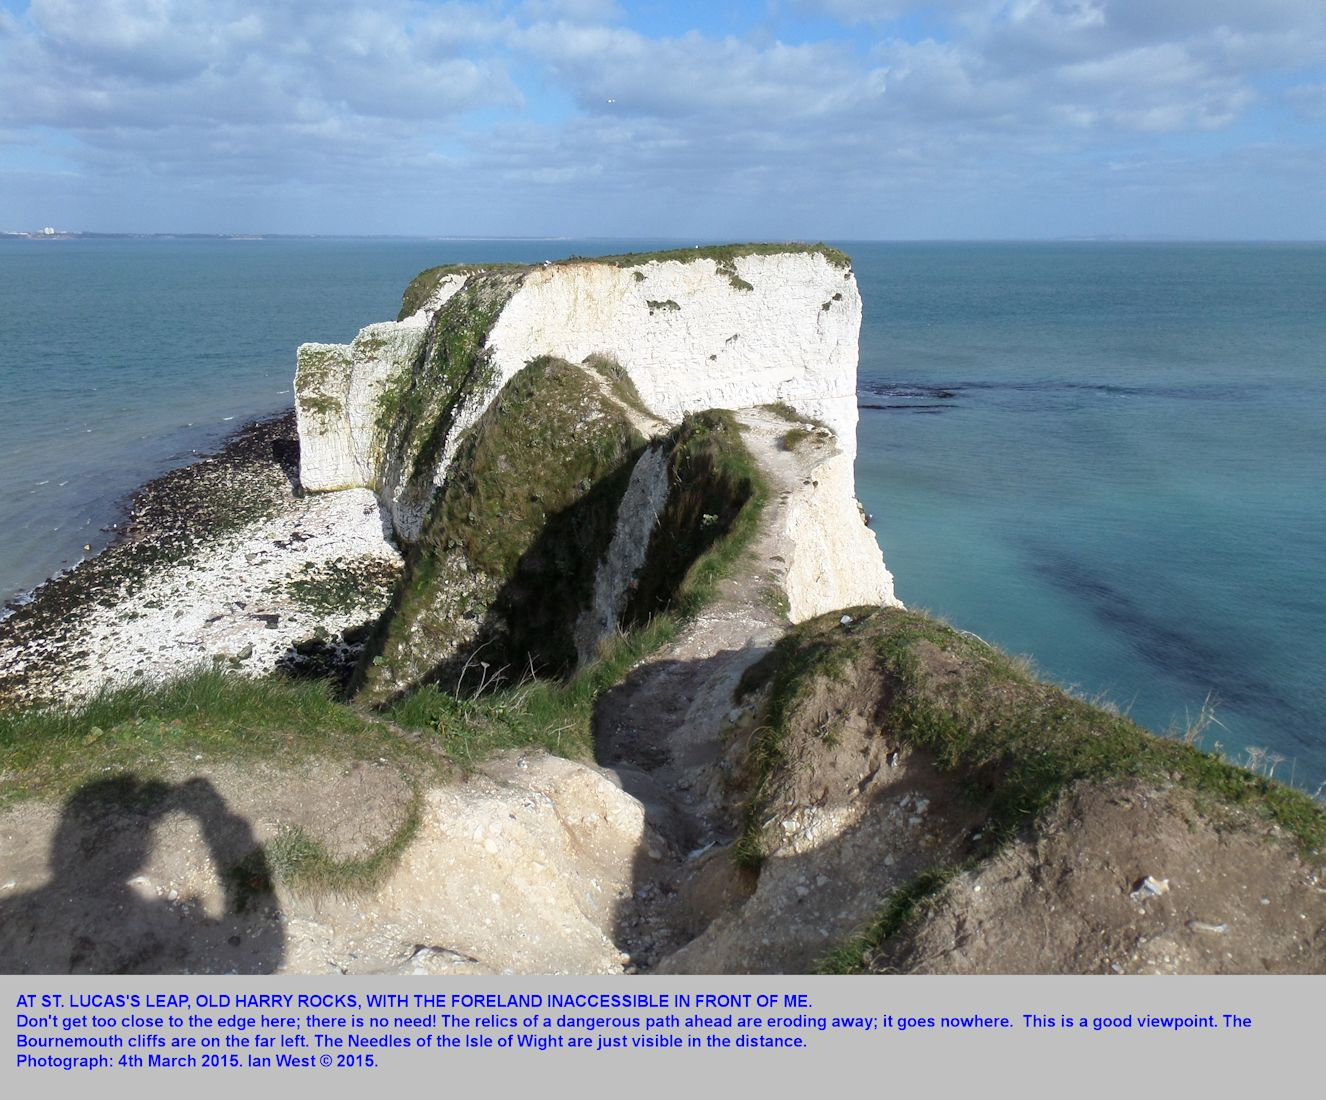 Viewpoint at the eroding, St. Lucas Leap, Old Harry Rocks, Dorset, 4th March 2015, by Ian West